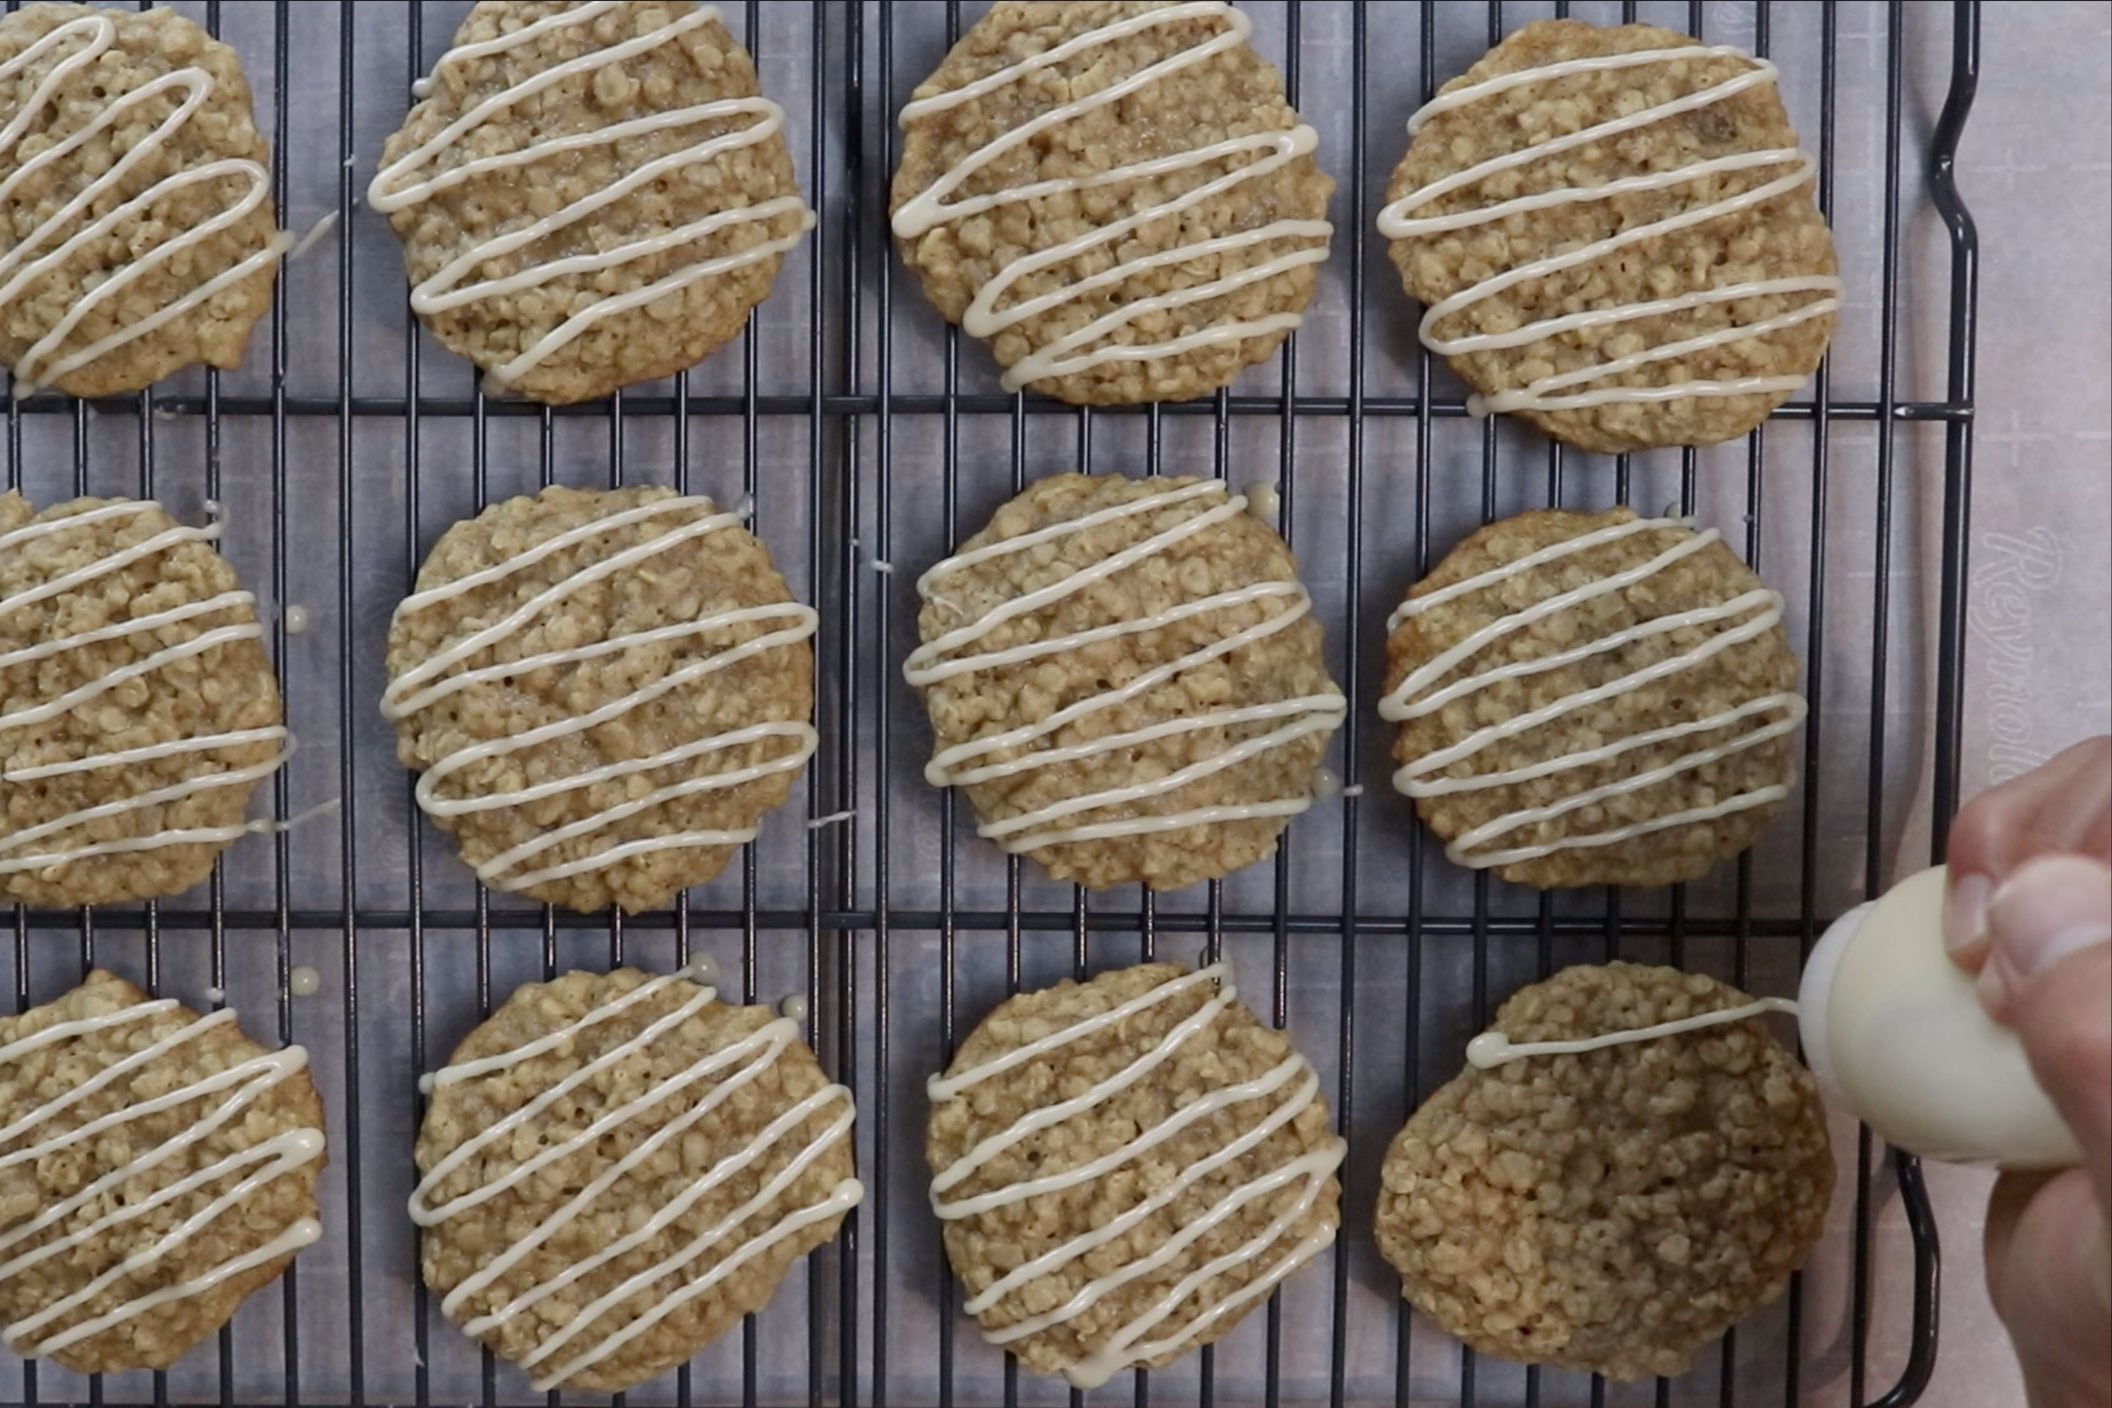 13. Drizzle maple glaze on top of the cookies and let cookies sit for an hour until the glaze hardens. -